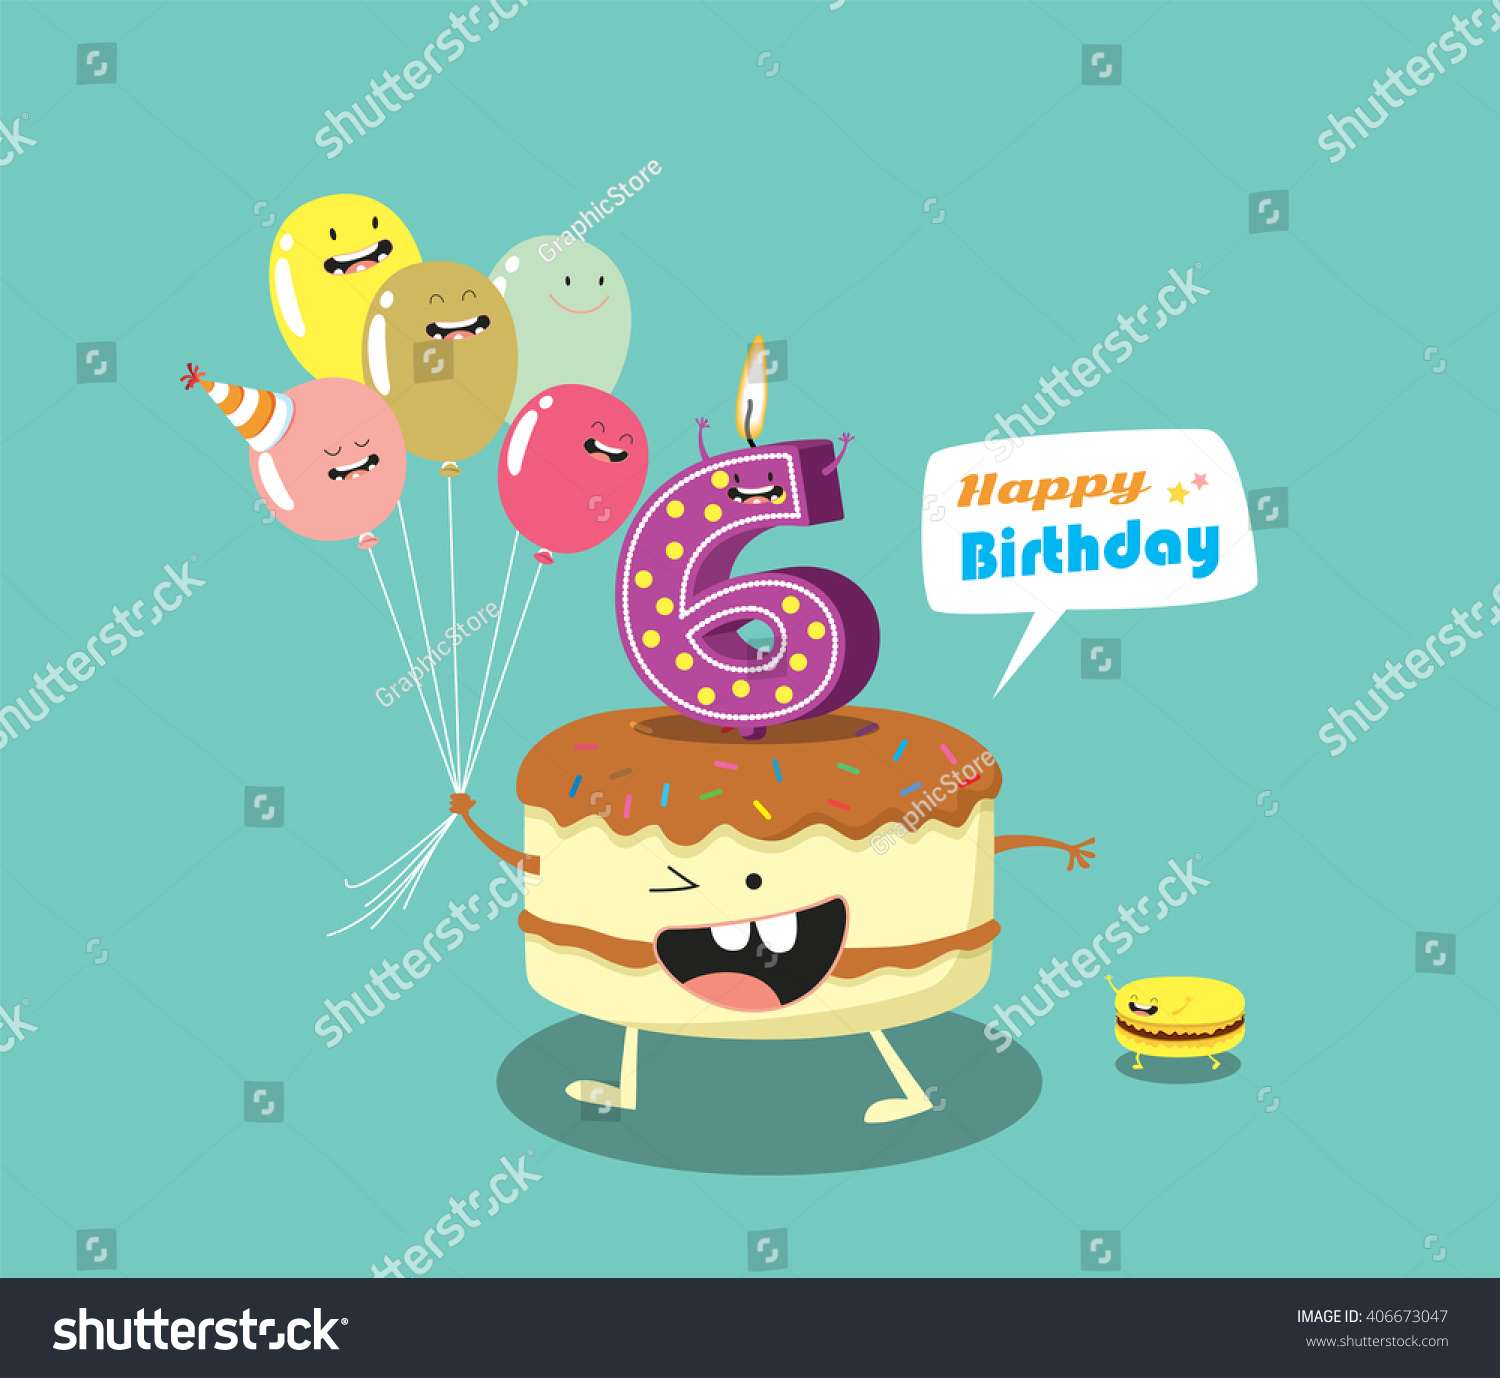 Happy Birthday Card Funny Cake Number Vector 406673047 – Funny Happy Birthday Cards for Friends